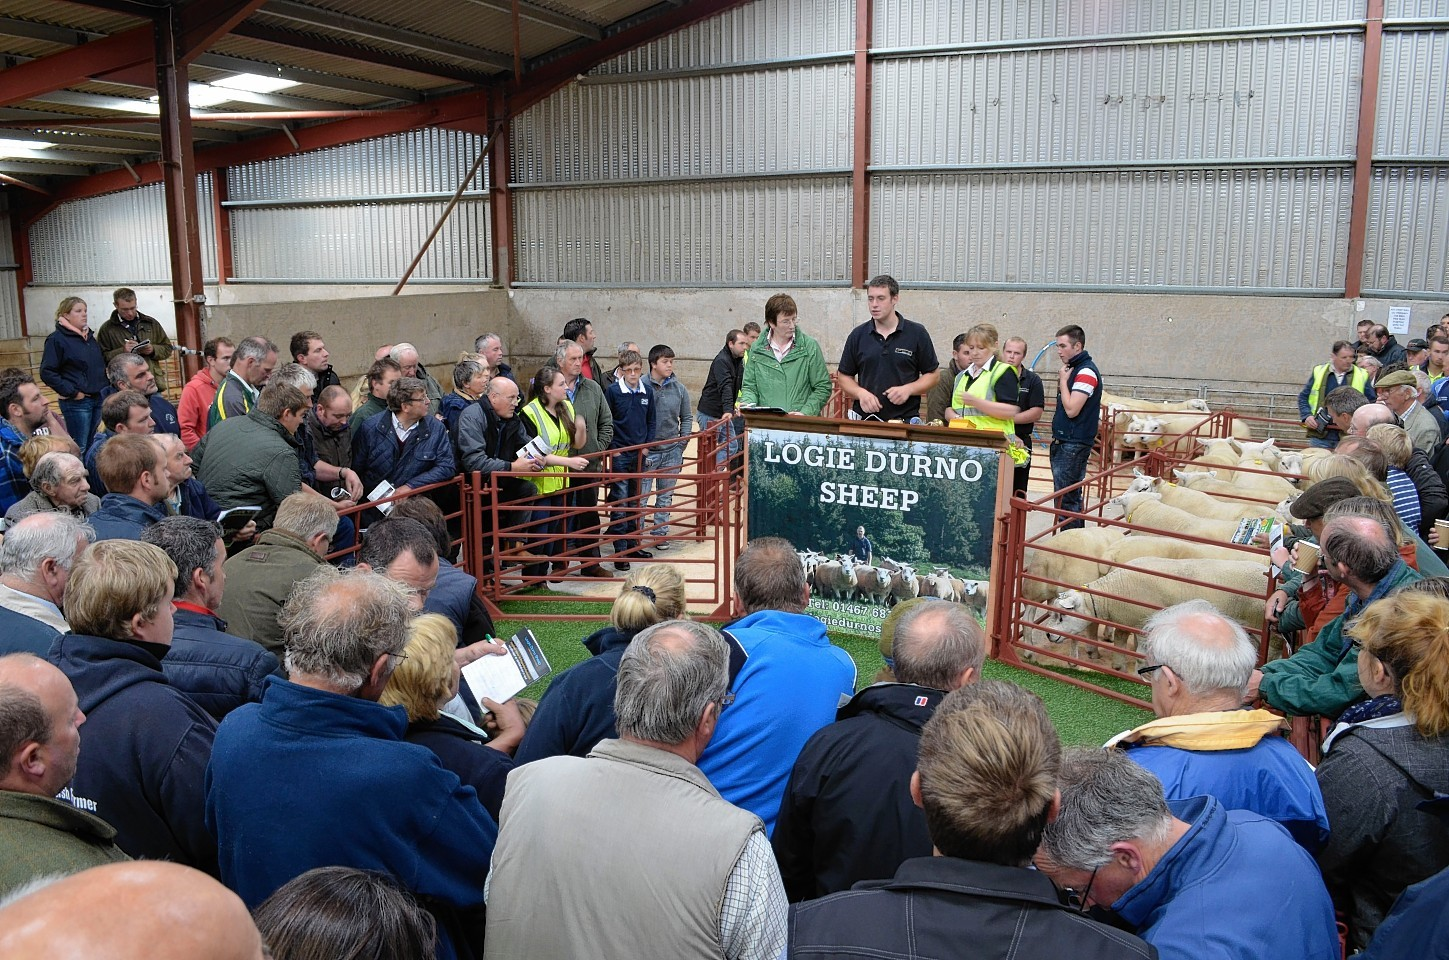 A previous sale at Logie Durno